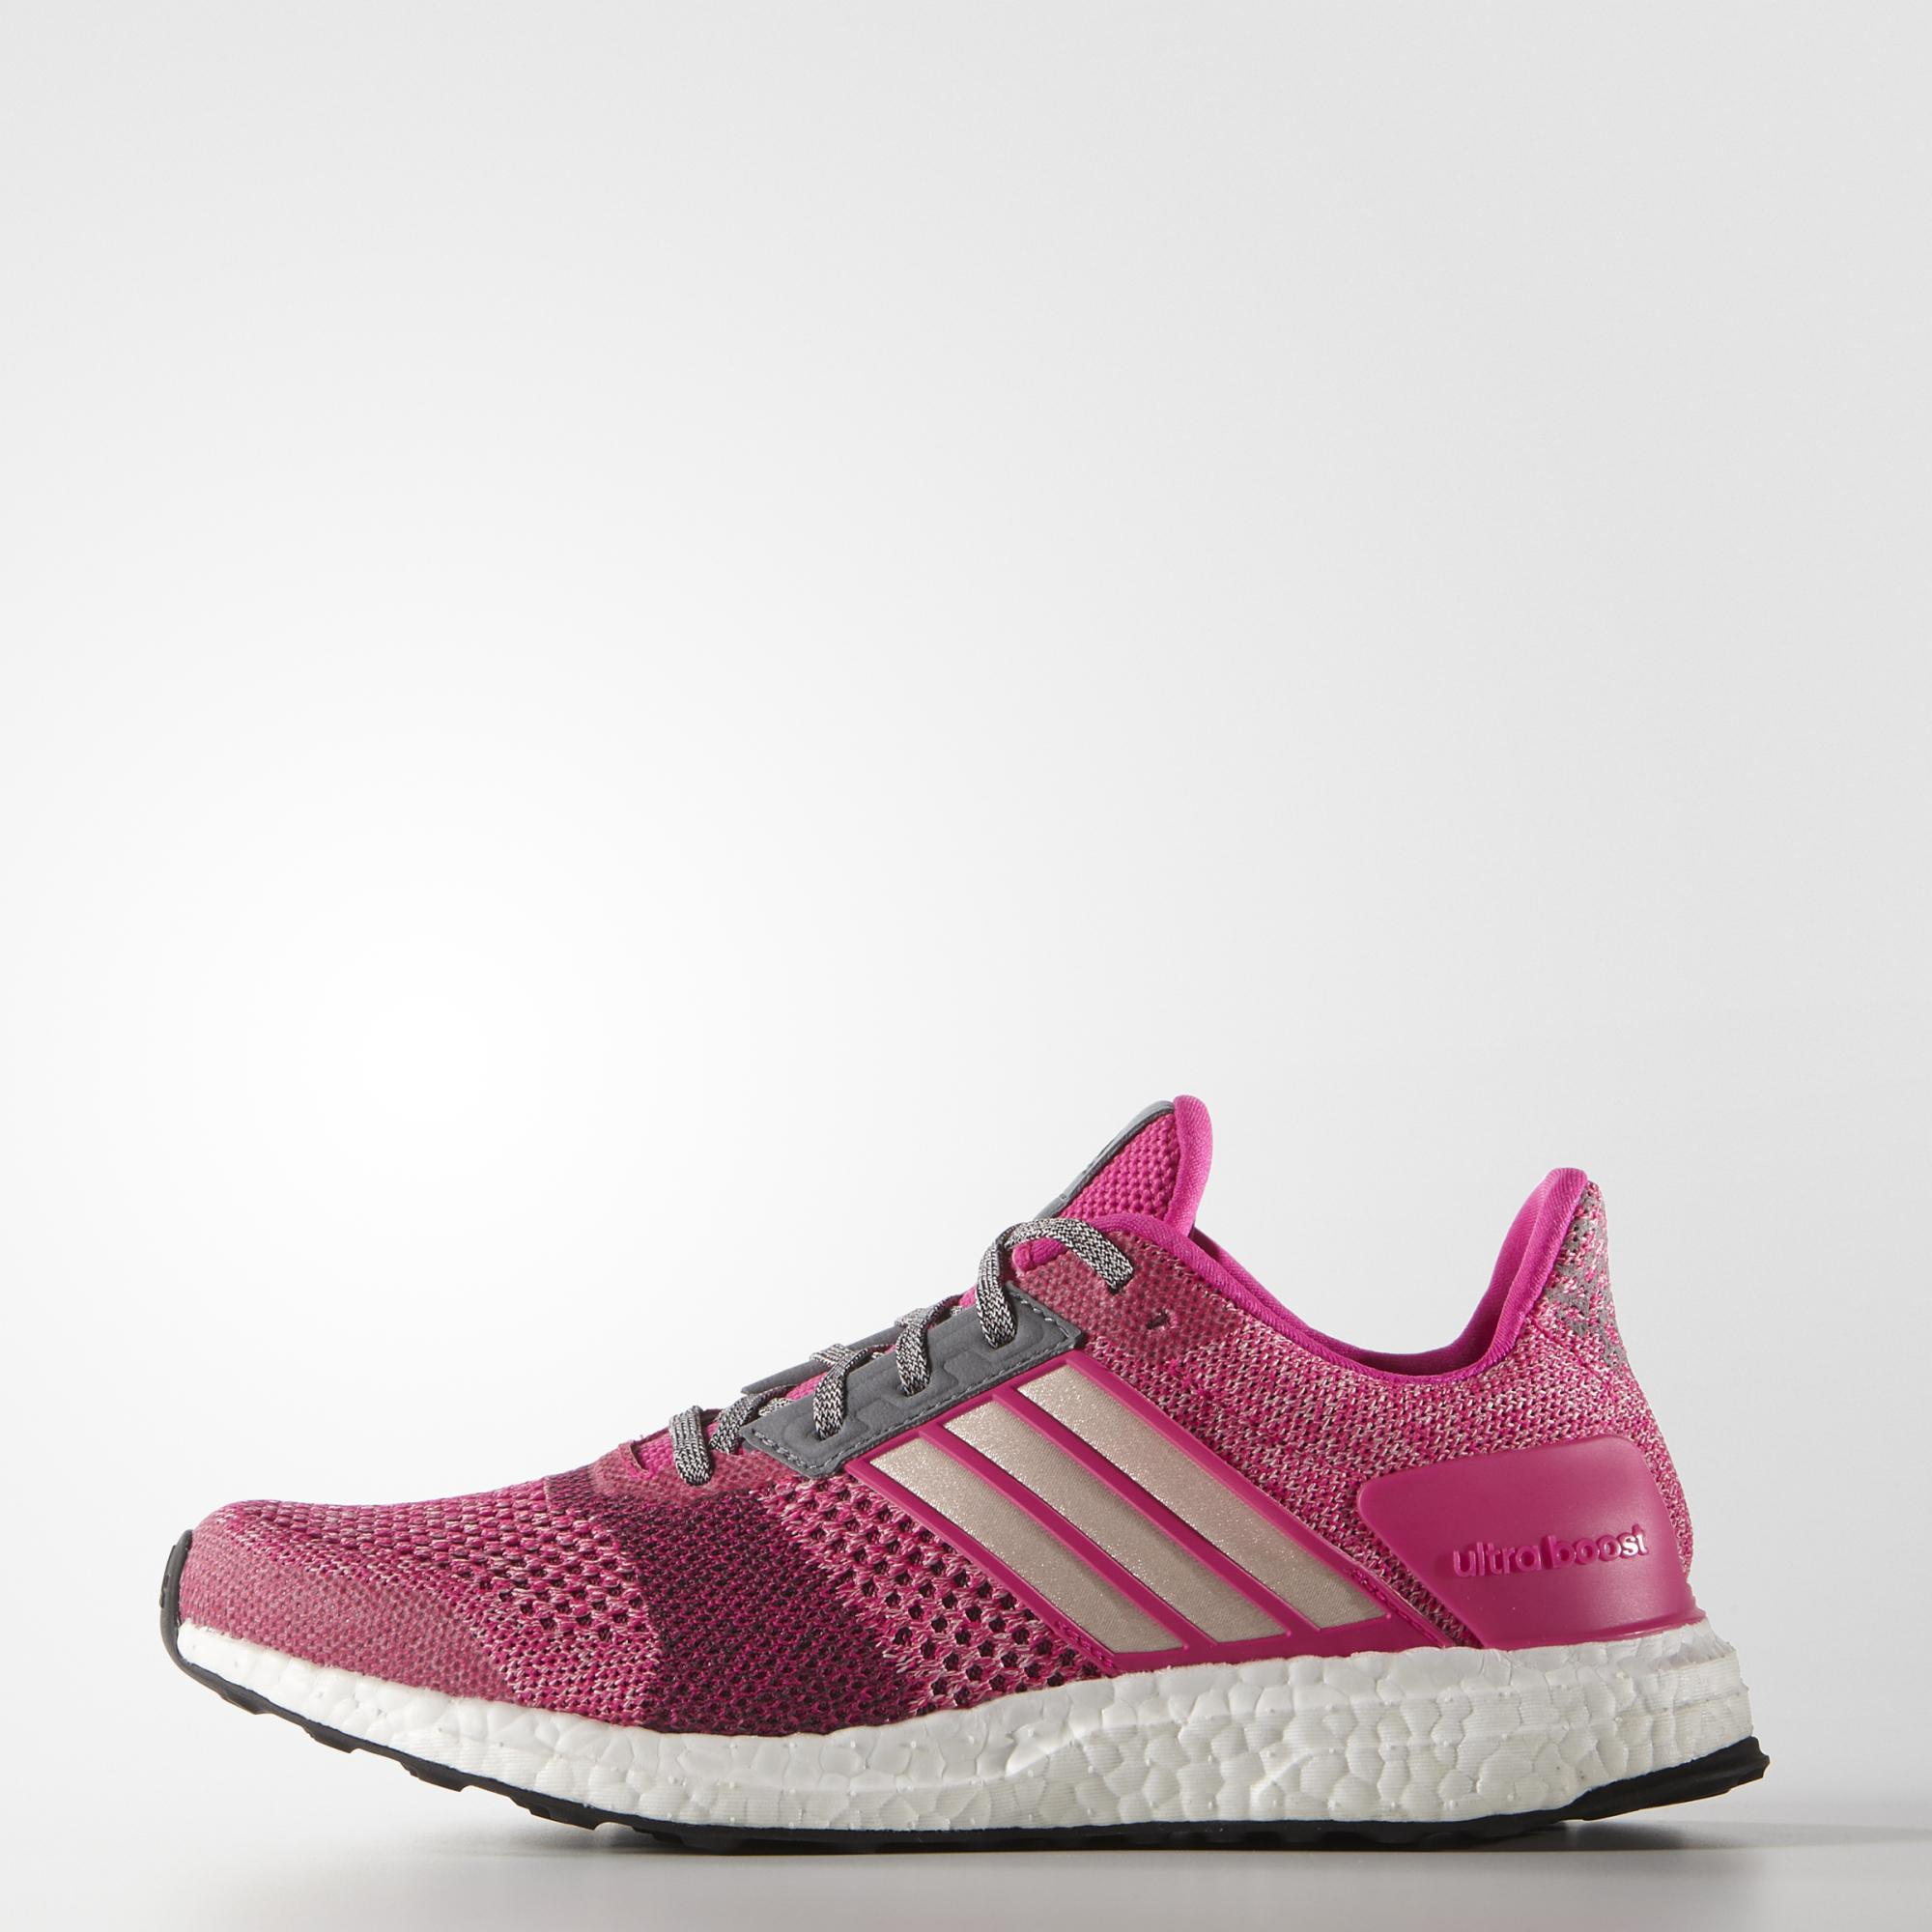 Adidas Womens Ultra Boost St Running Shoes Pink